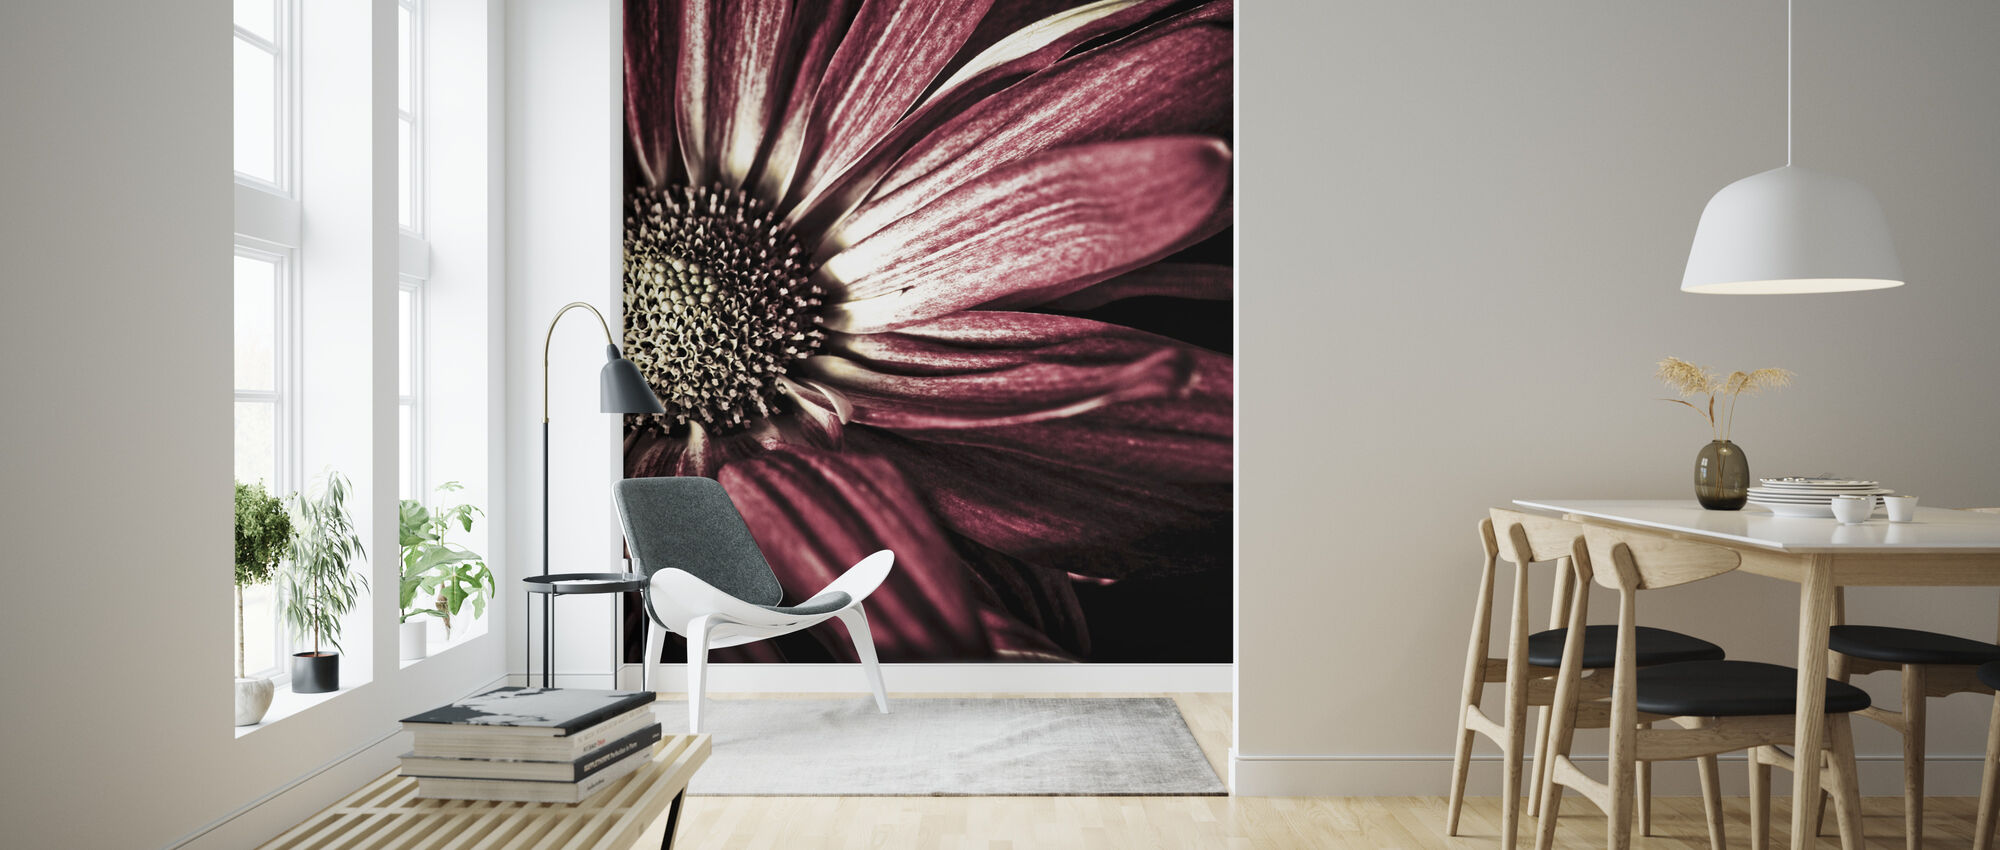 Dark Daisy - Wallpaper - Living Room